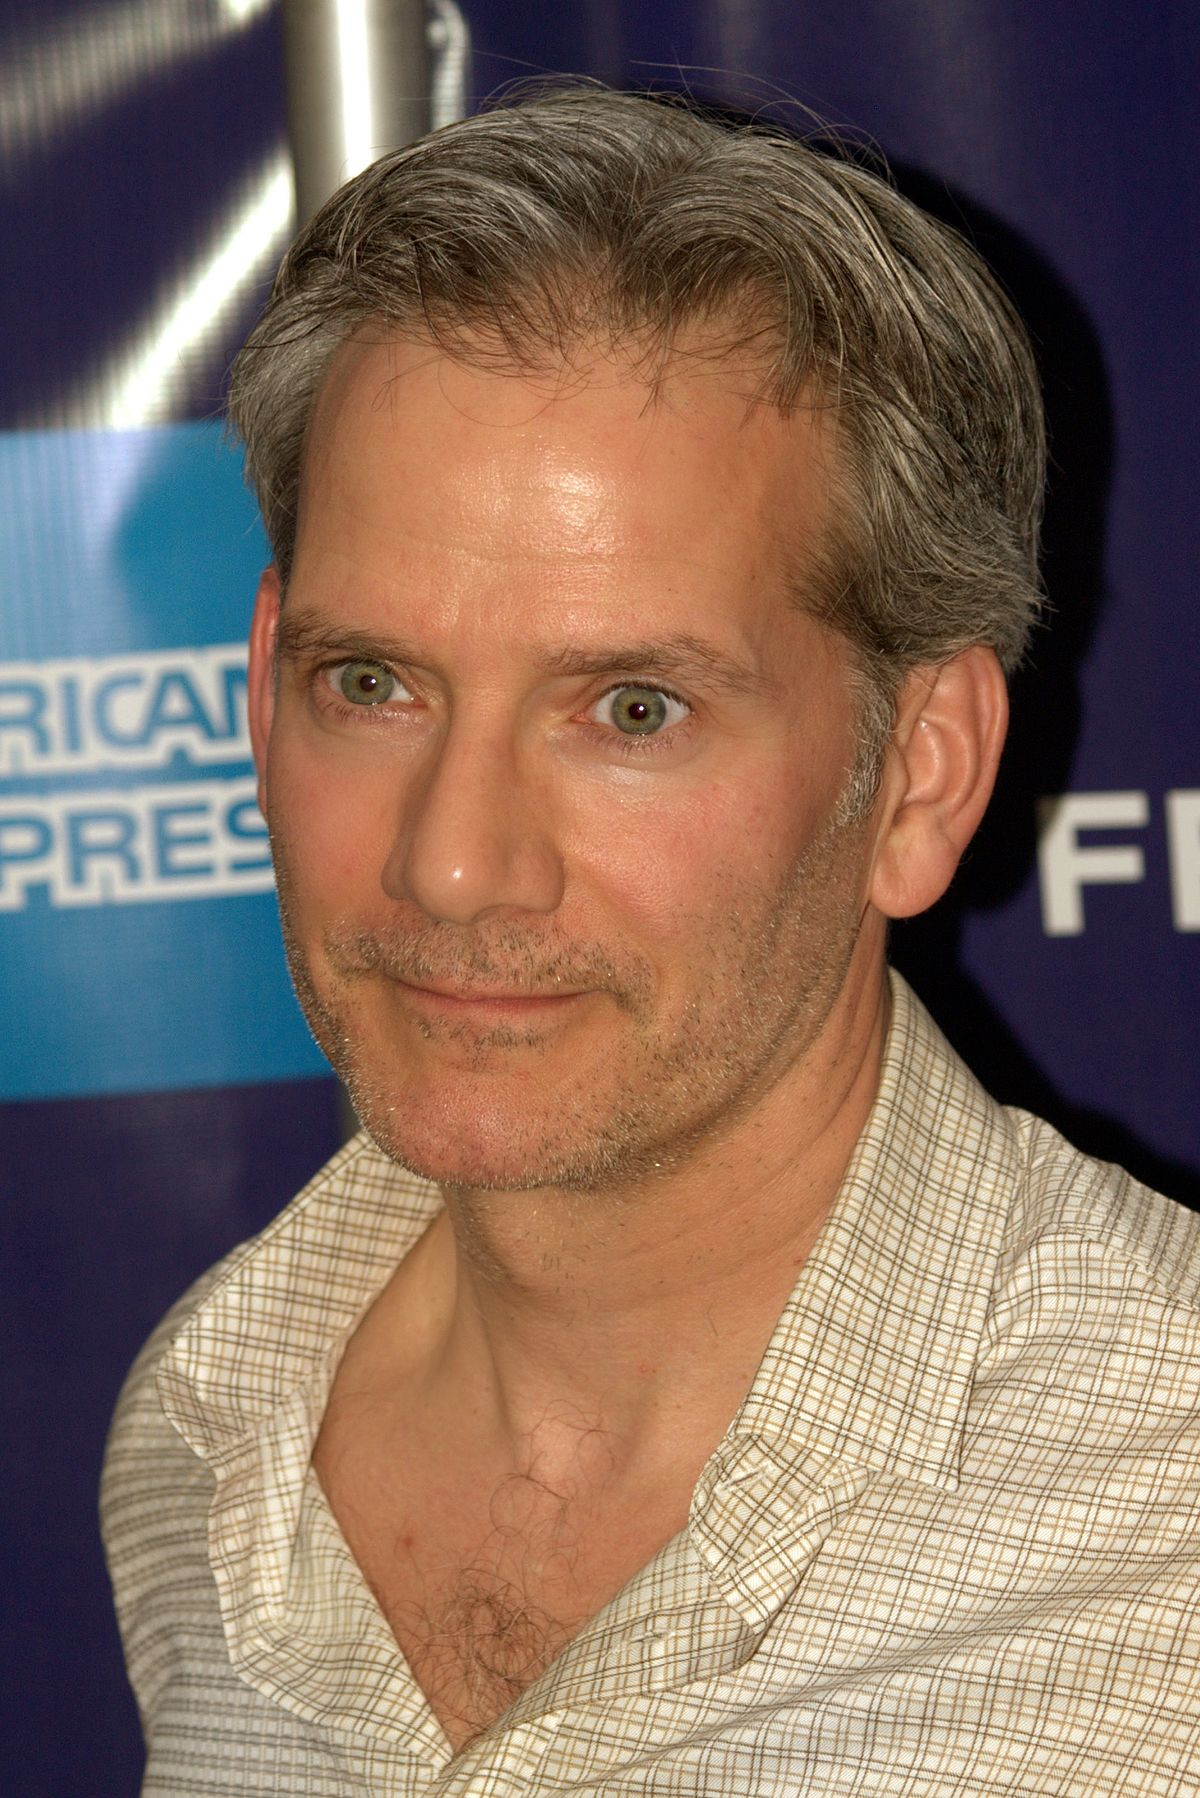 Everything about the star: Campbell Scott 97